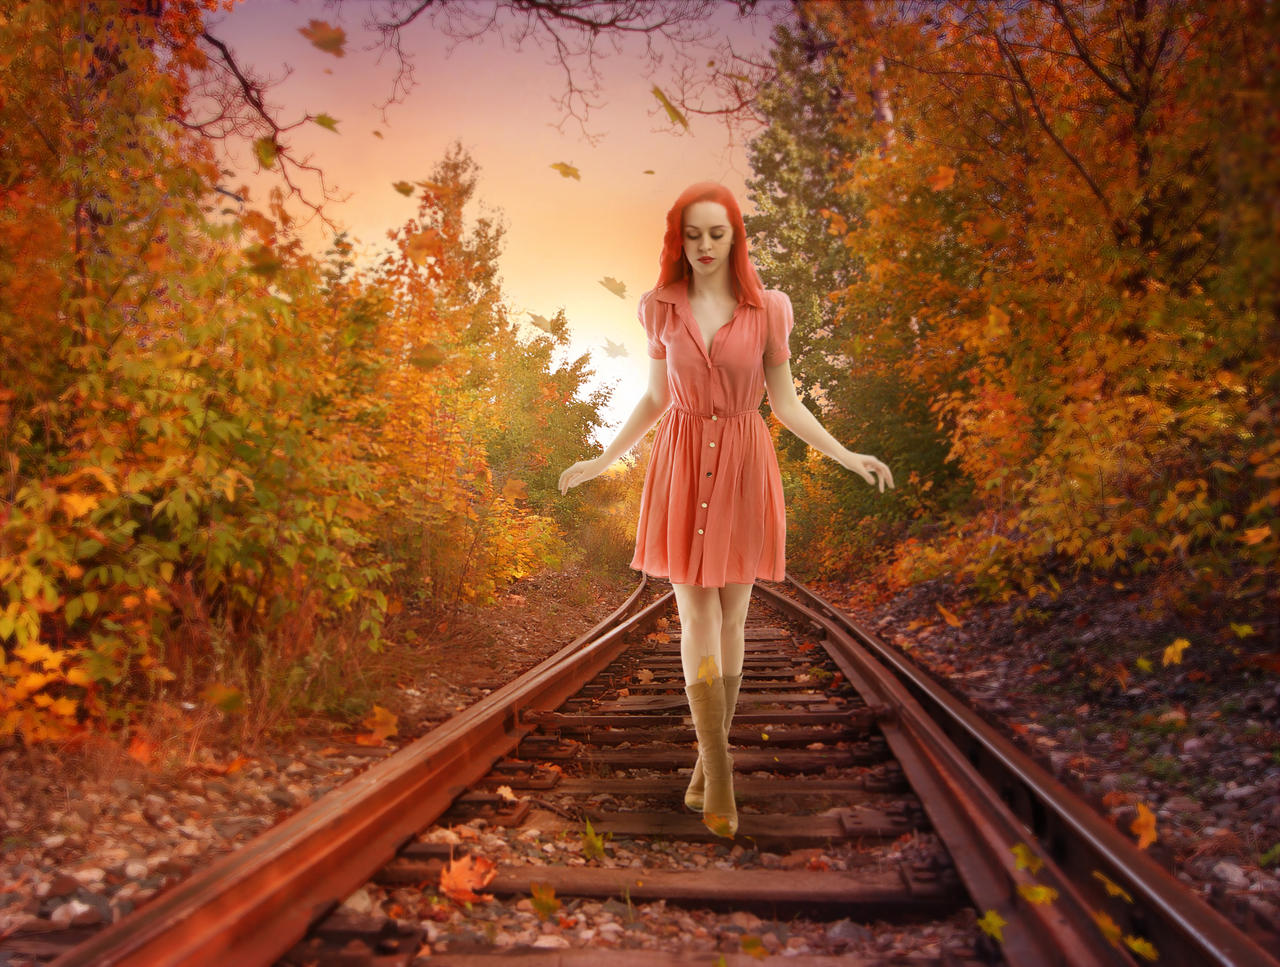 Girl on Railway Track by Rshant